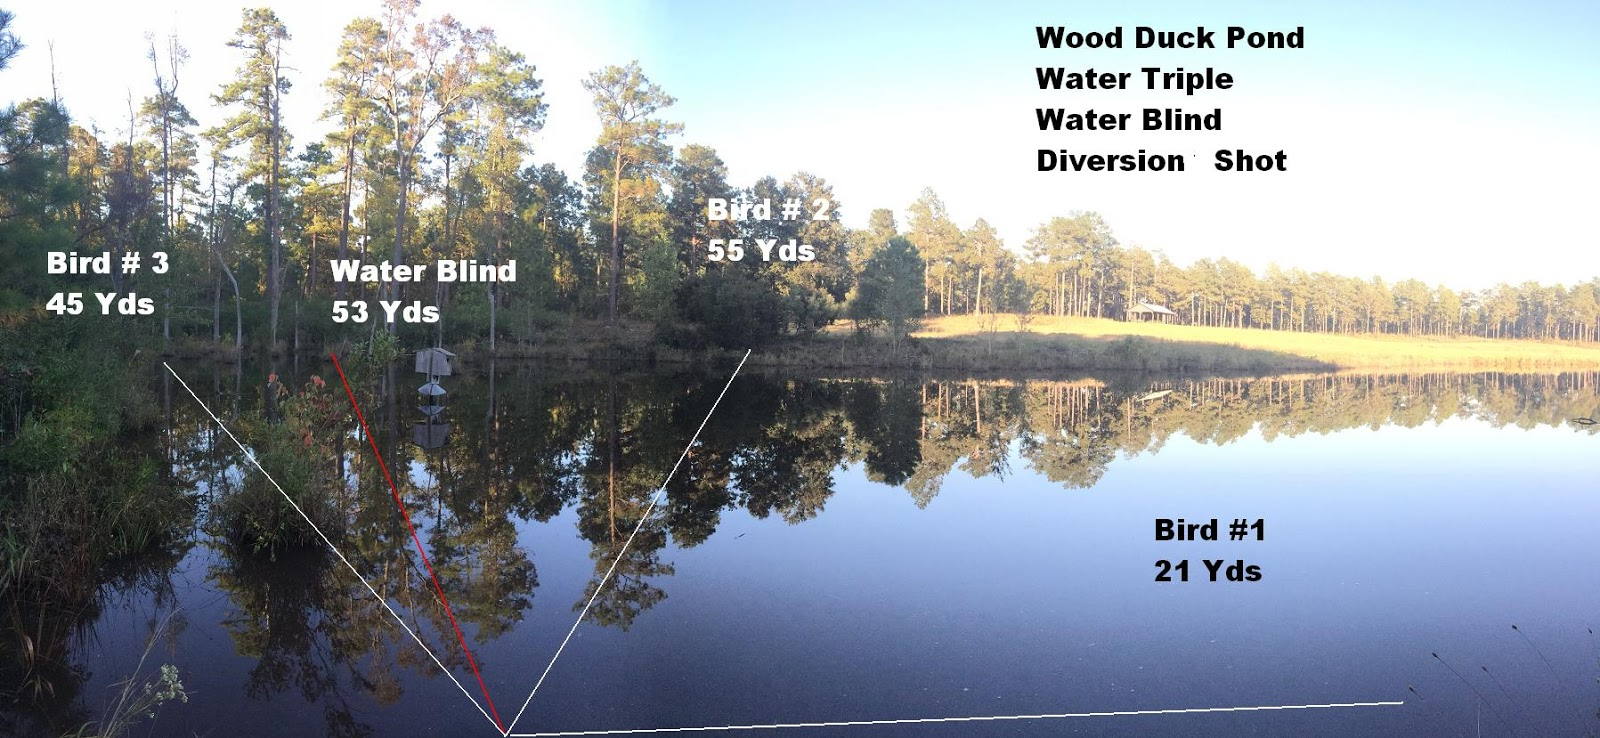 wood duck pond water final 1 2015 diagrams byrd's campground, furr's pitt, wood duck, clubhouse